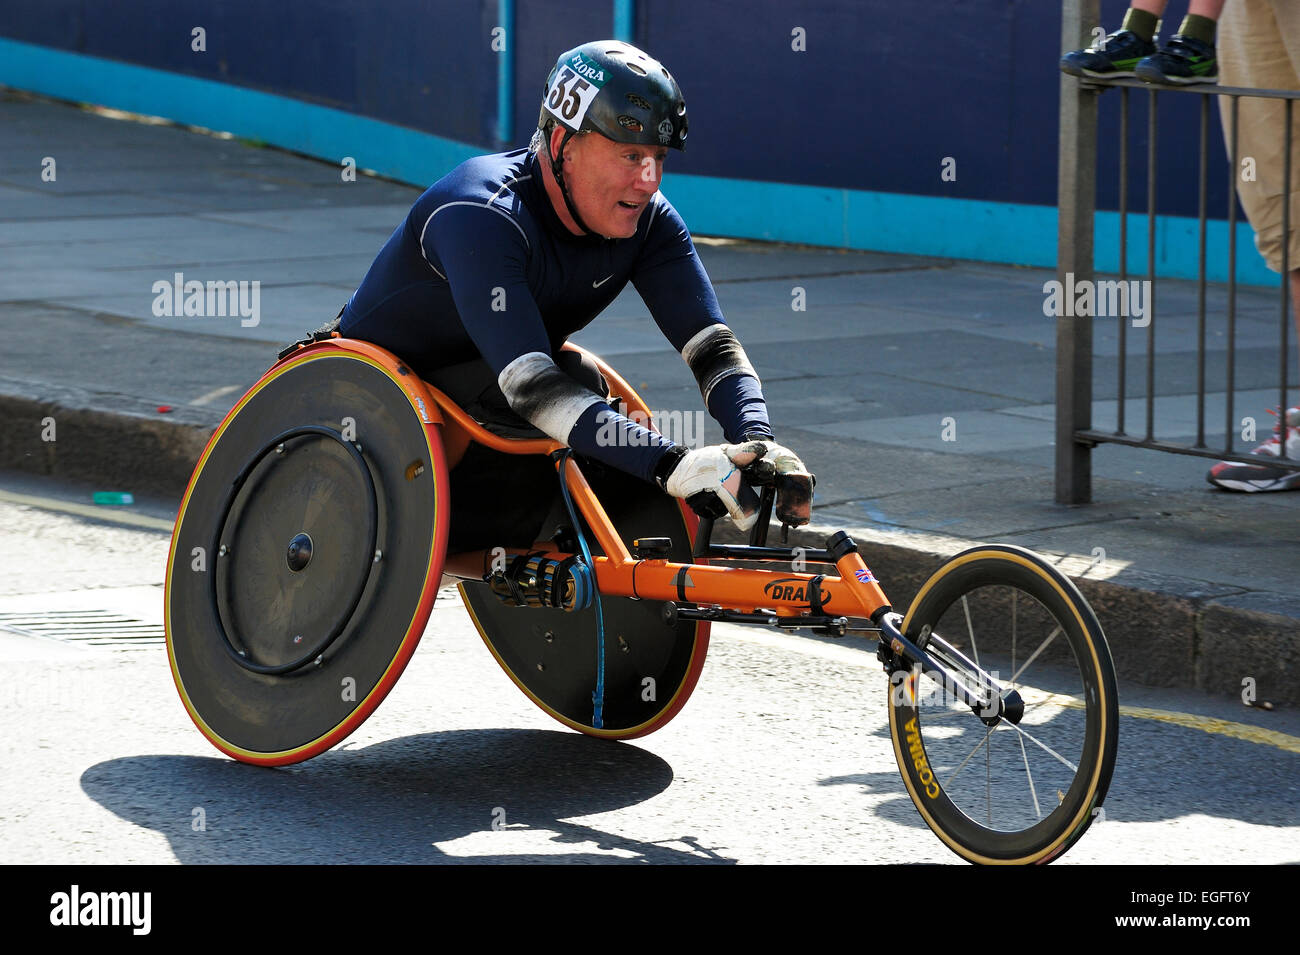 Disabled athlete taking part in the London marathon wheelchair race - Stock Image